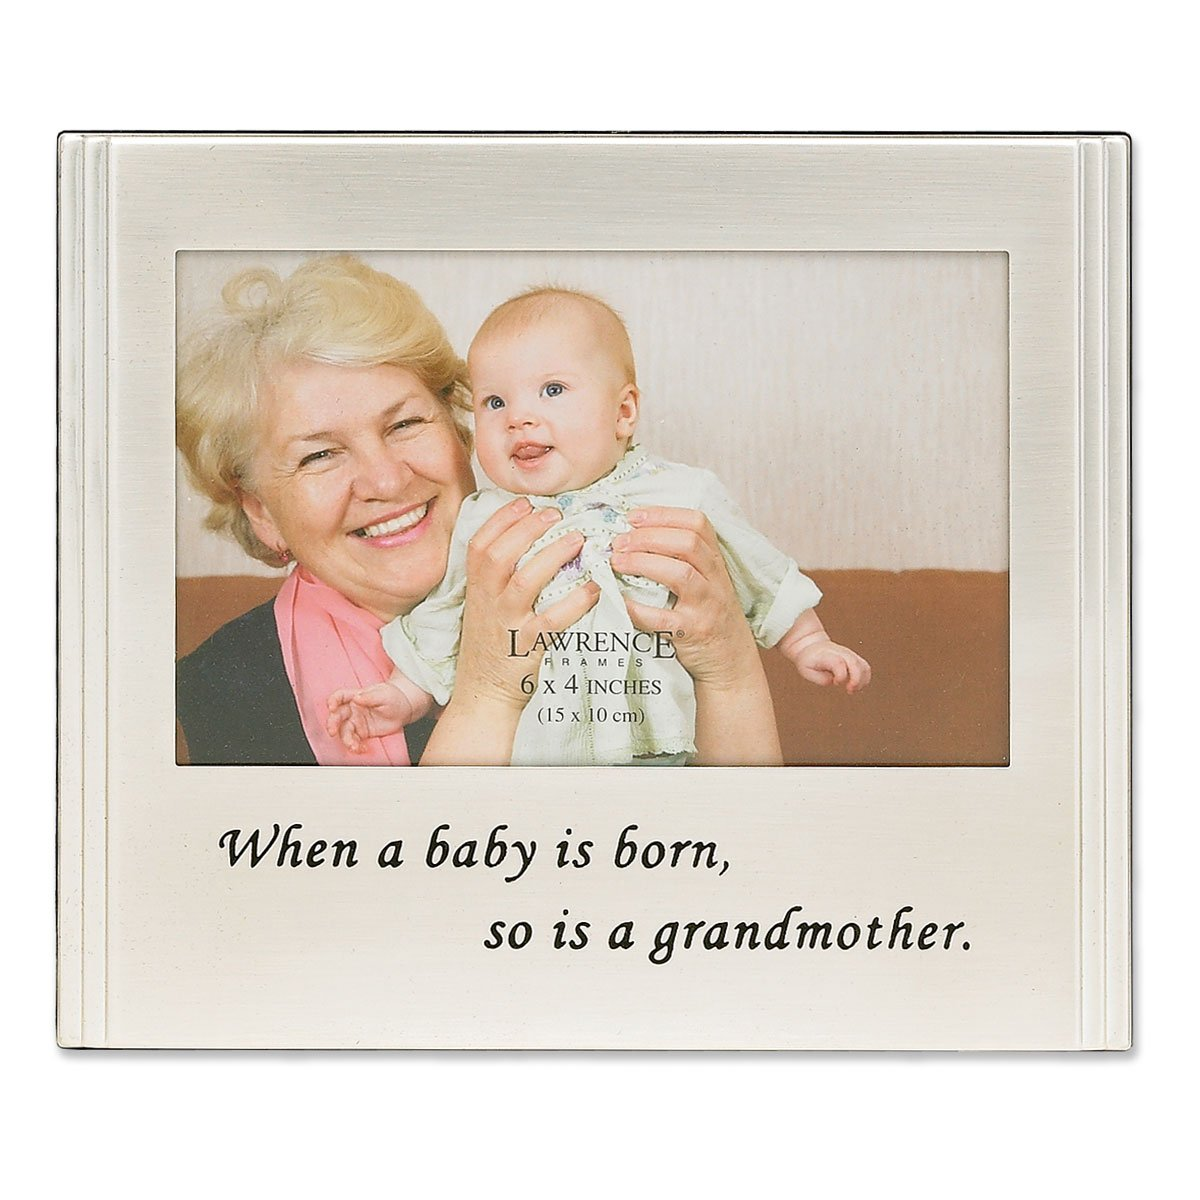 amazoncom lawrence frames when a baby is born so is a grandmother silver plated 6x4 picture frame single frames